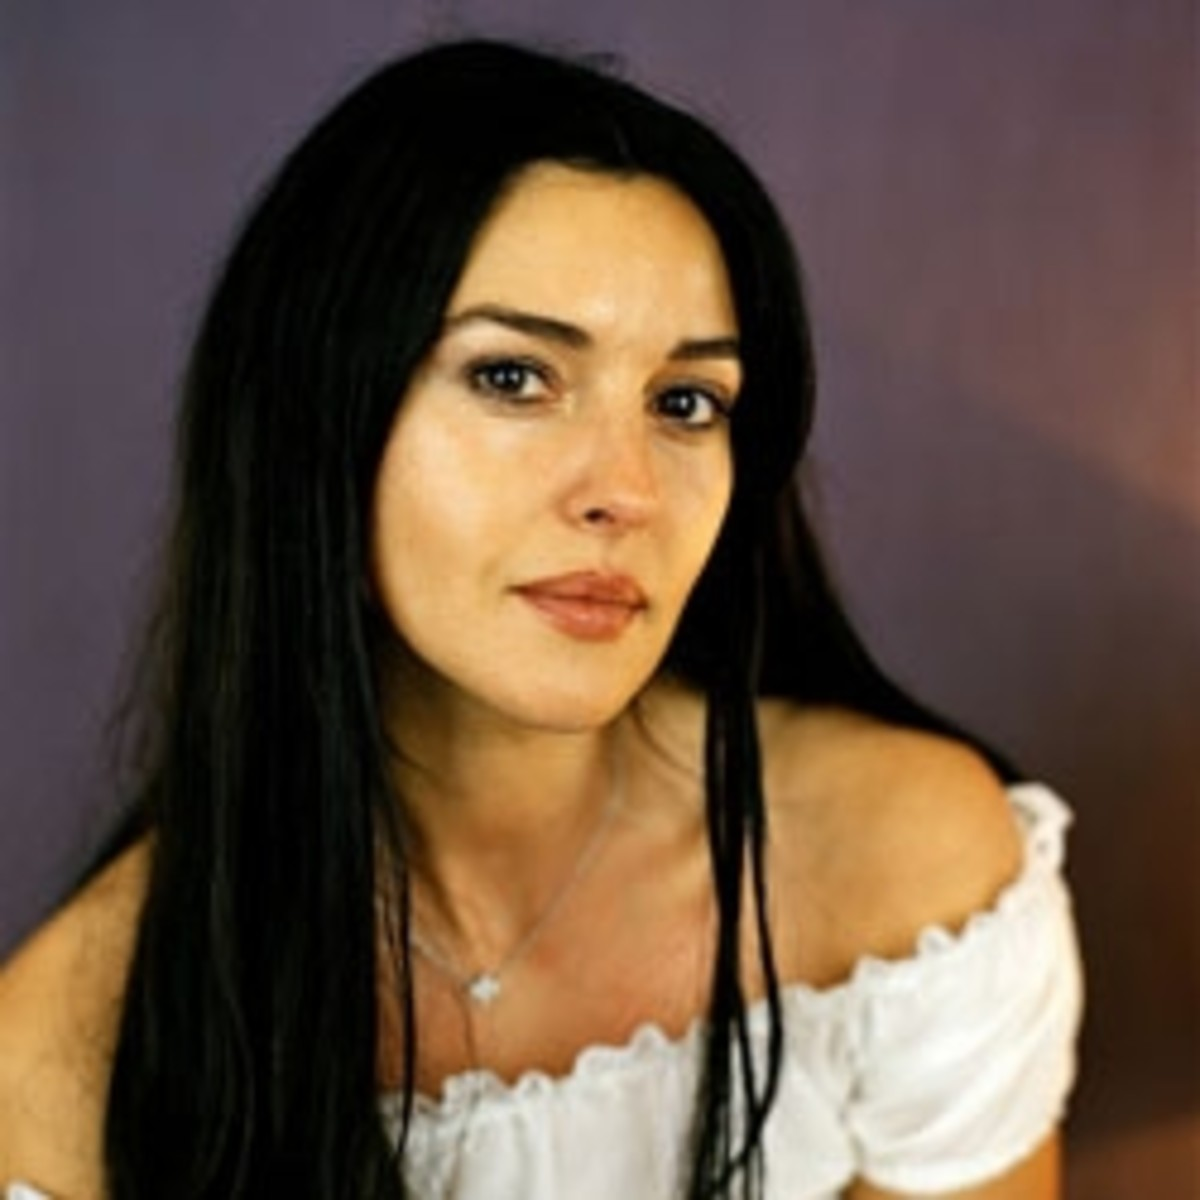 Monica Bellucci Pictures Gallery and Profile